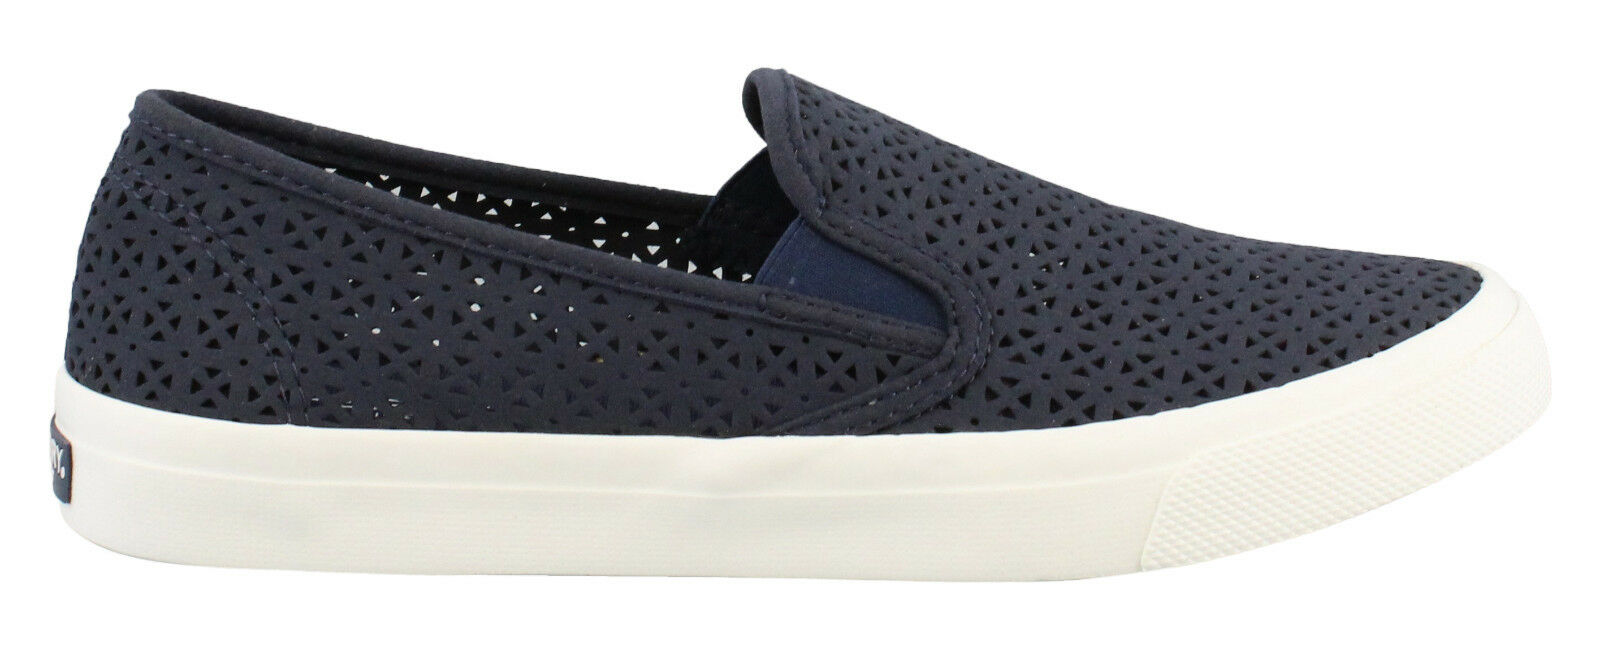 NIB Sperry Top-Sider Wouomo Seaside Perf Nautical Boat sautope Navy blu Sz 8 -10